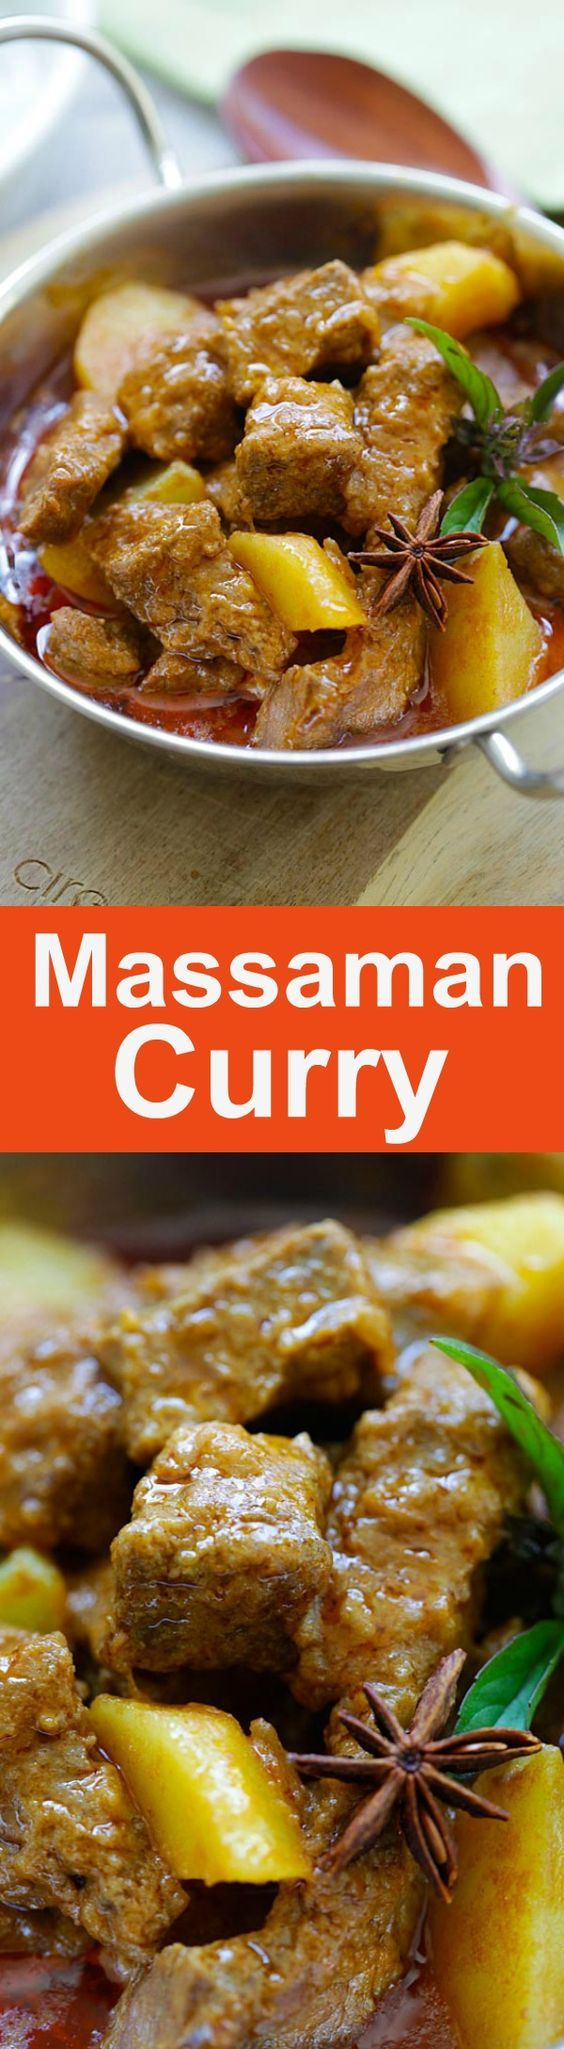 Beef Massaman Curry - crazy delicious Thai beef massaman curry. Learn how to make massaman curry with this easy and fail-proof recipe. from @rasamalaysia